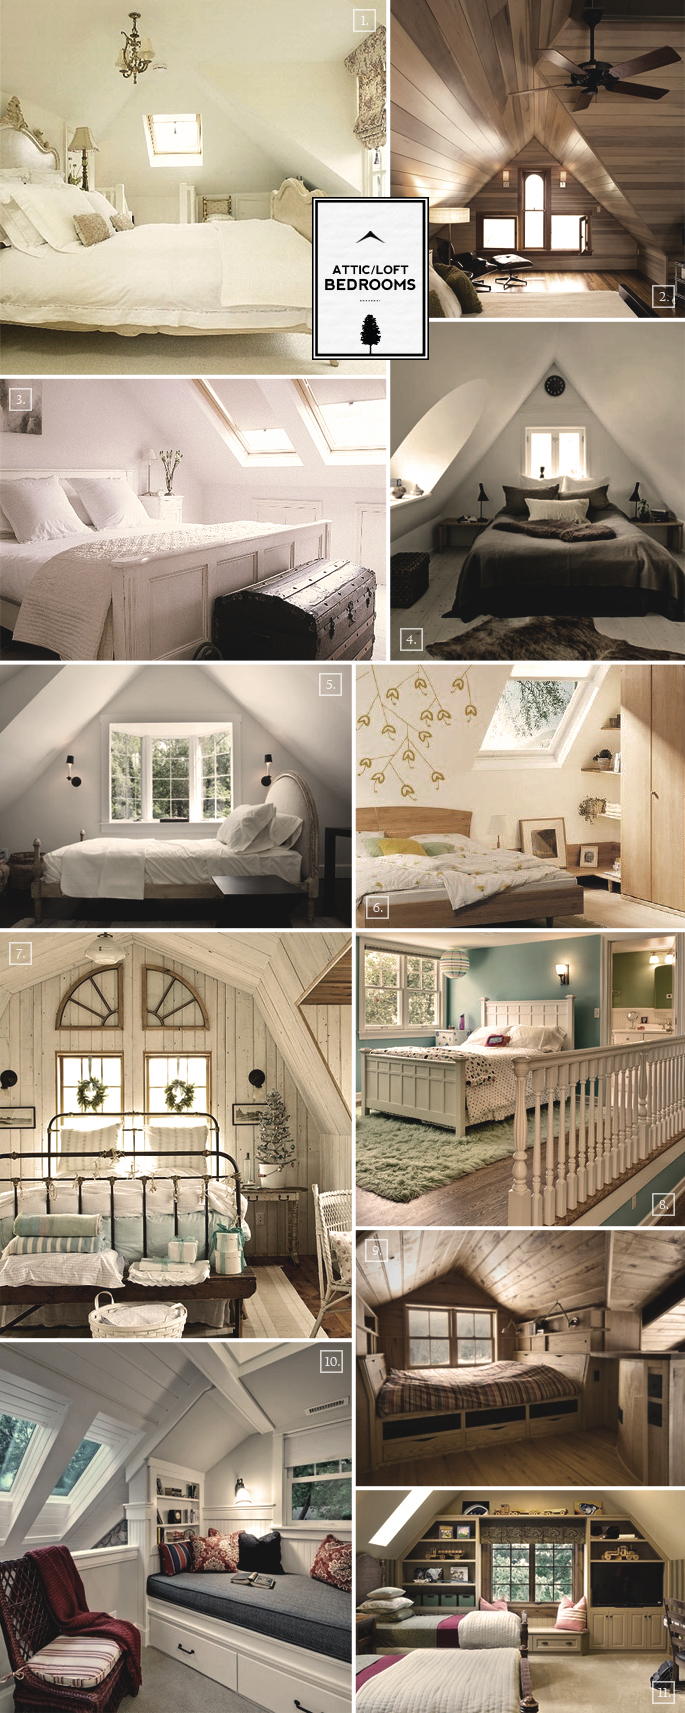 design ideas for an attic loft bedroom home tree atlas